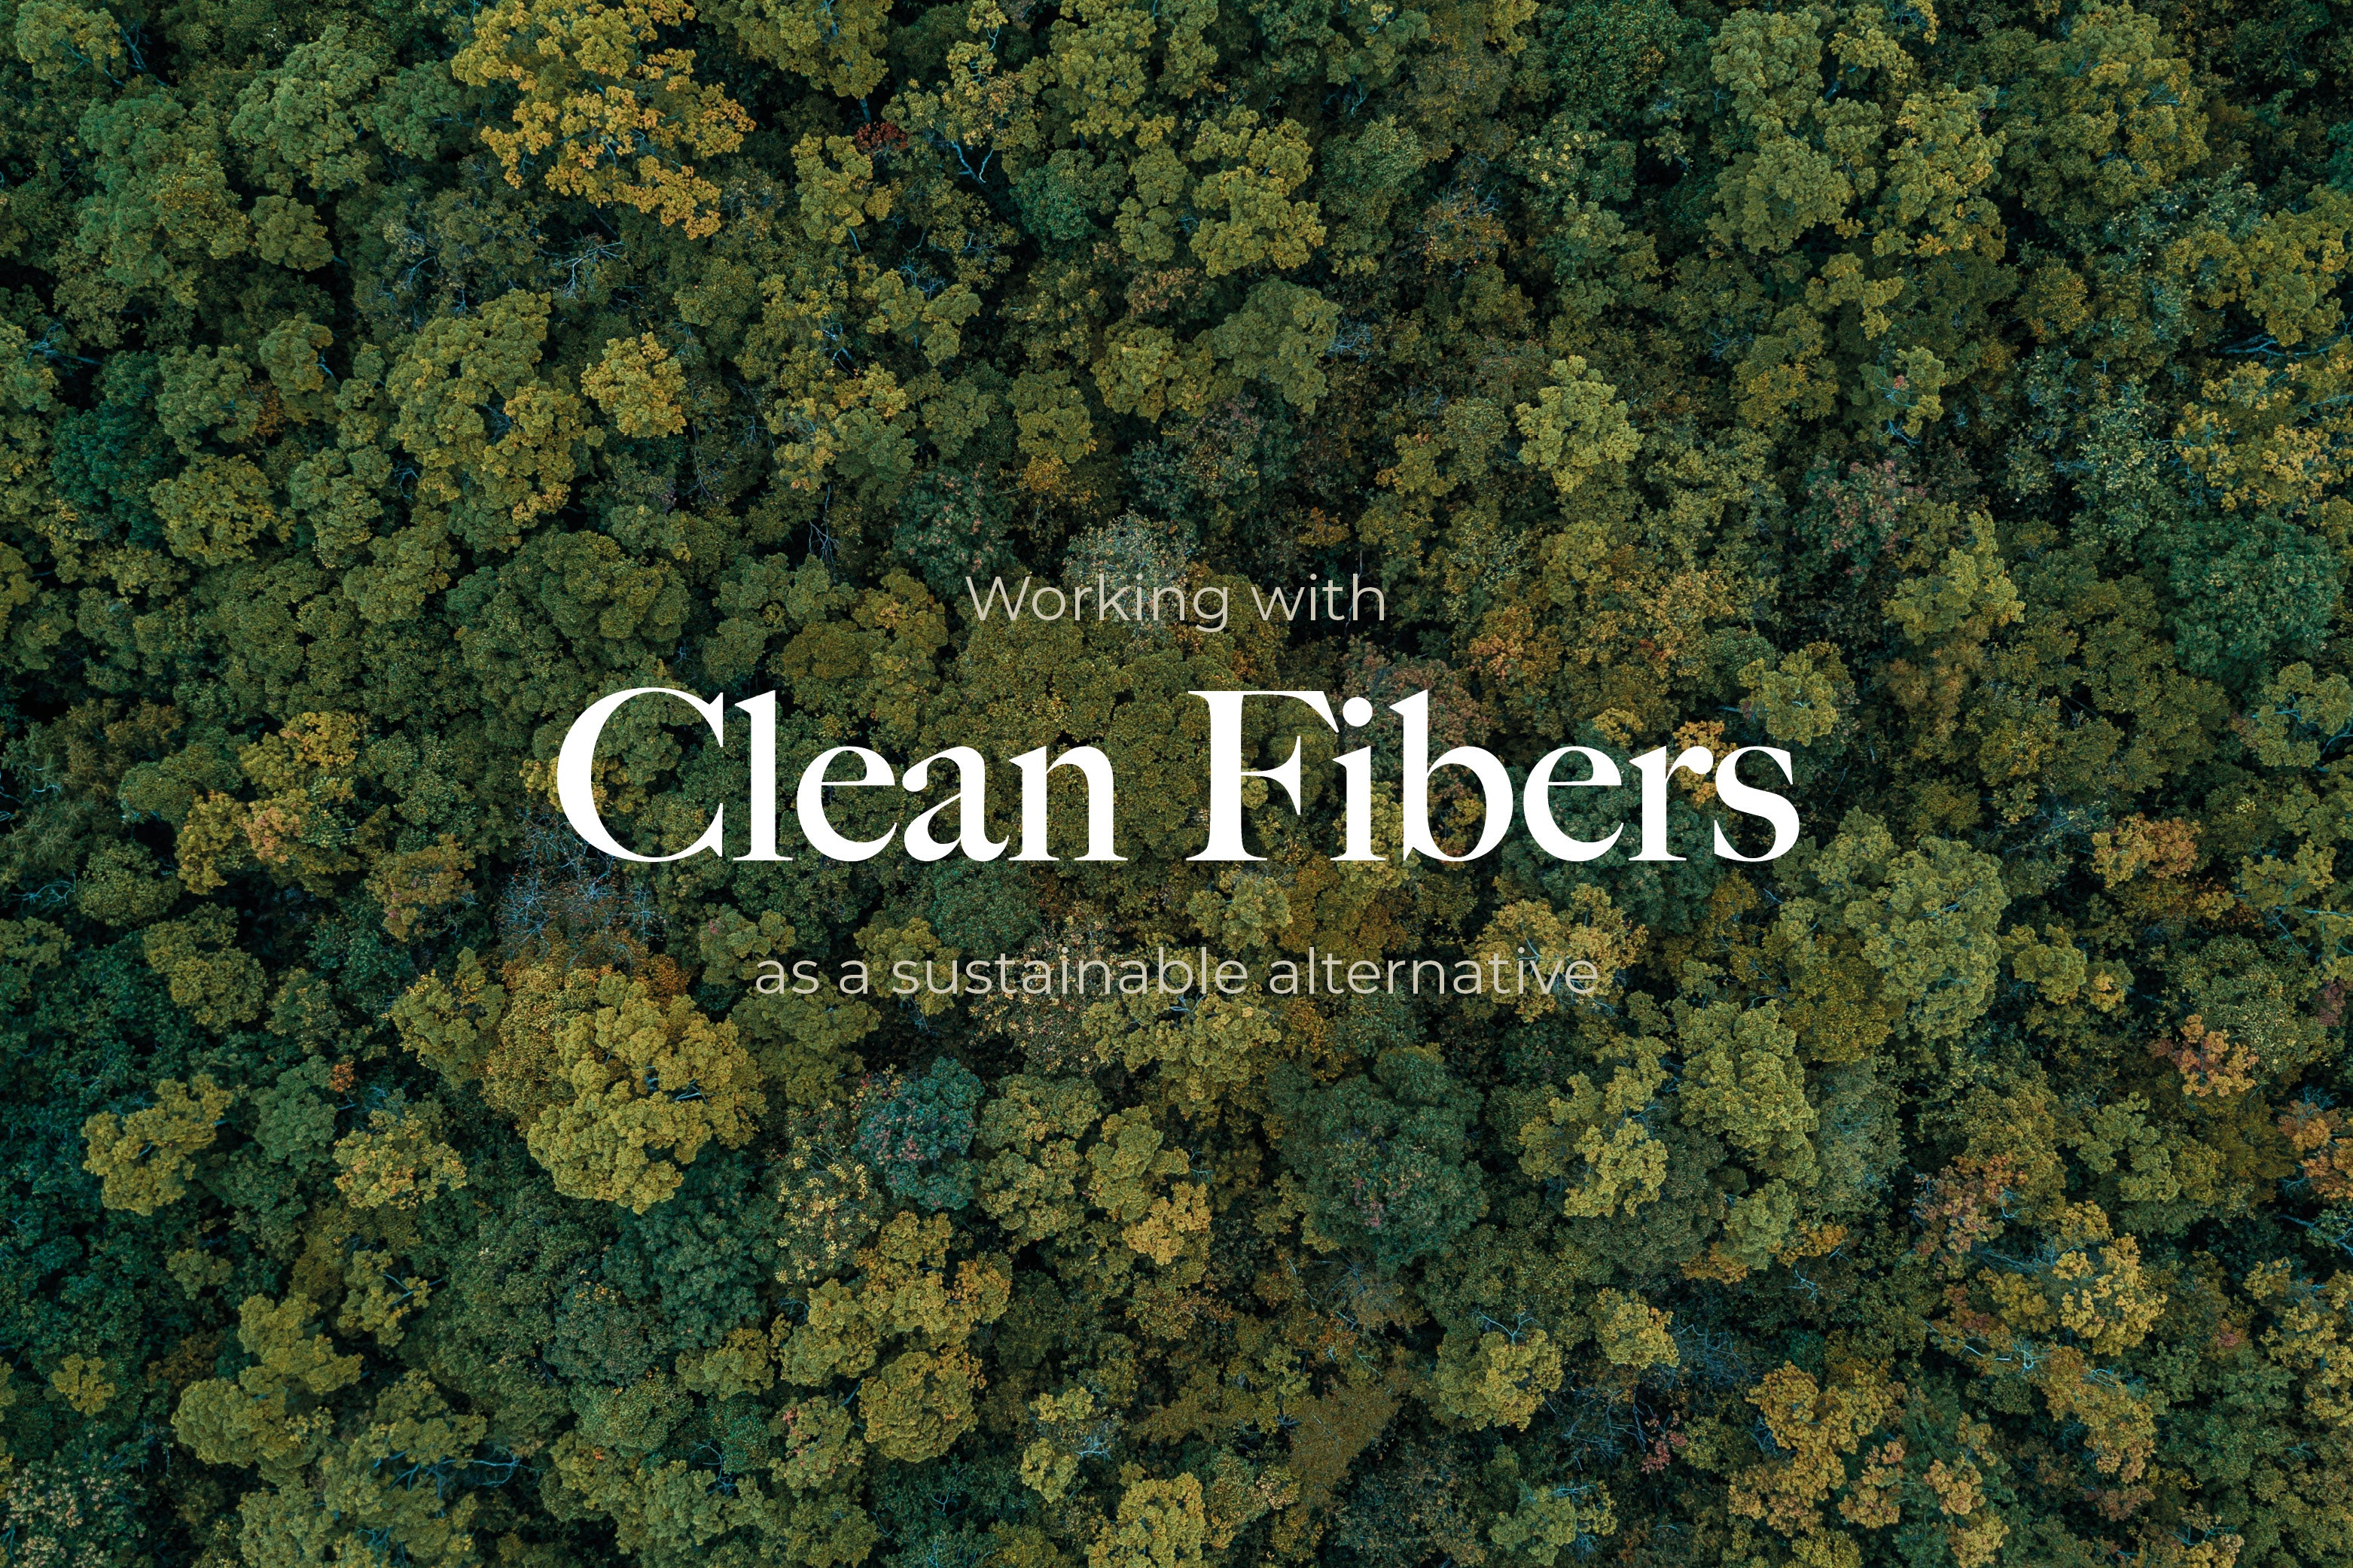 Working with clean fibers as a sustainable alternative